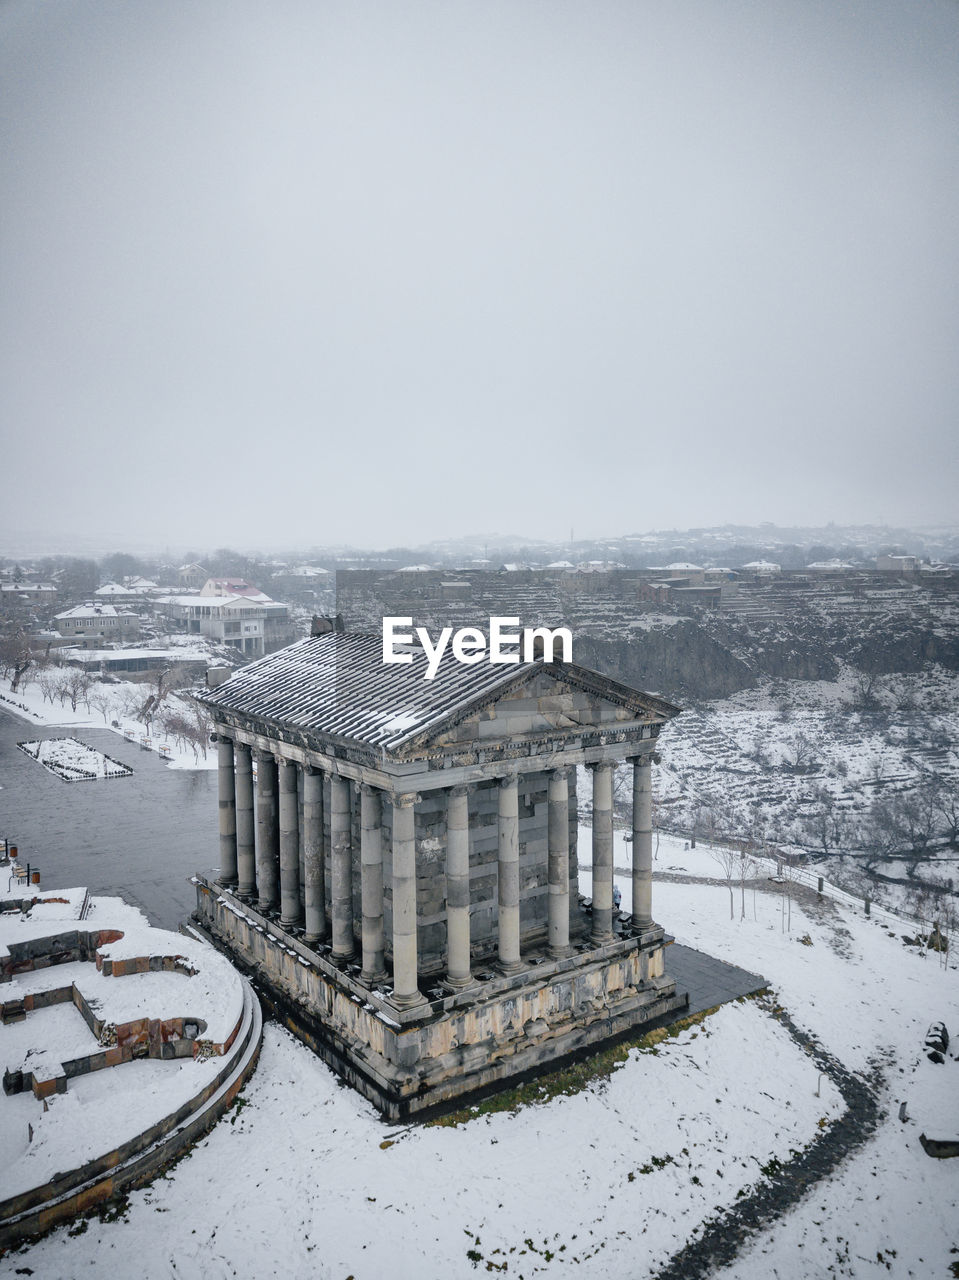 HIGH ANGLE VIEW OF SNOW COVERED BUILDINGS AGAINST CLEAR SKY